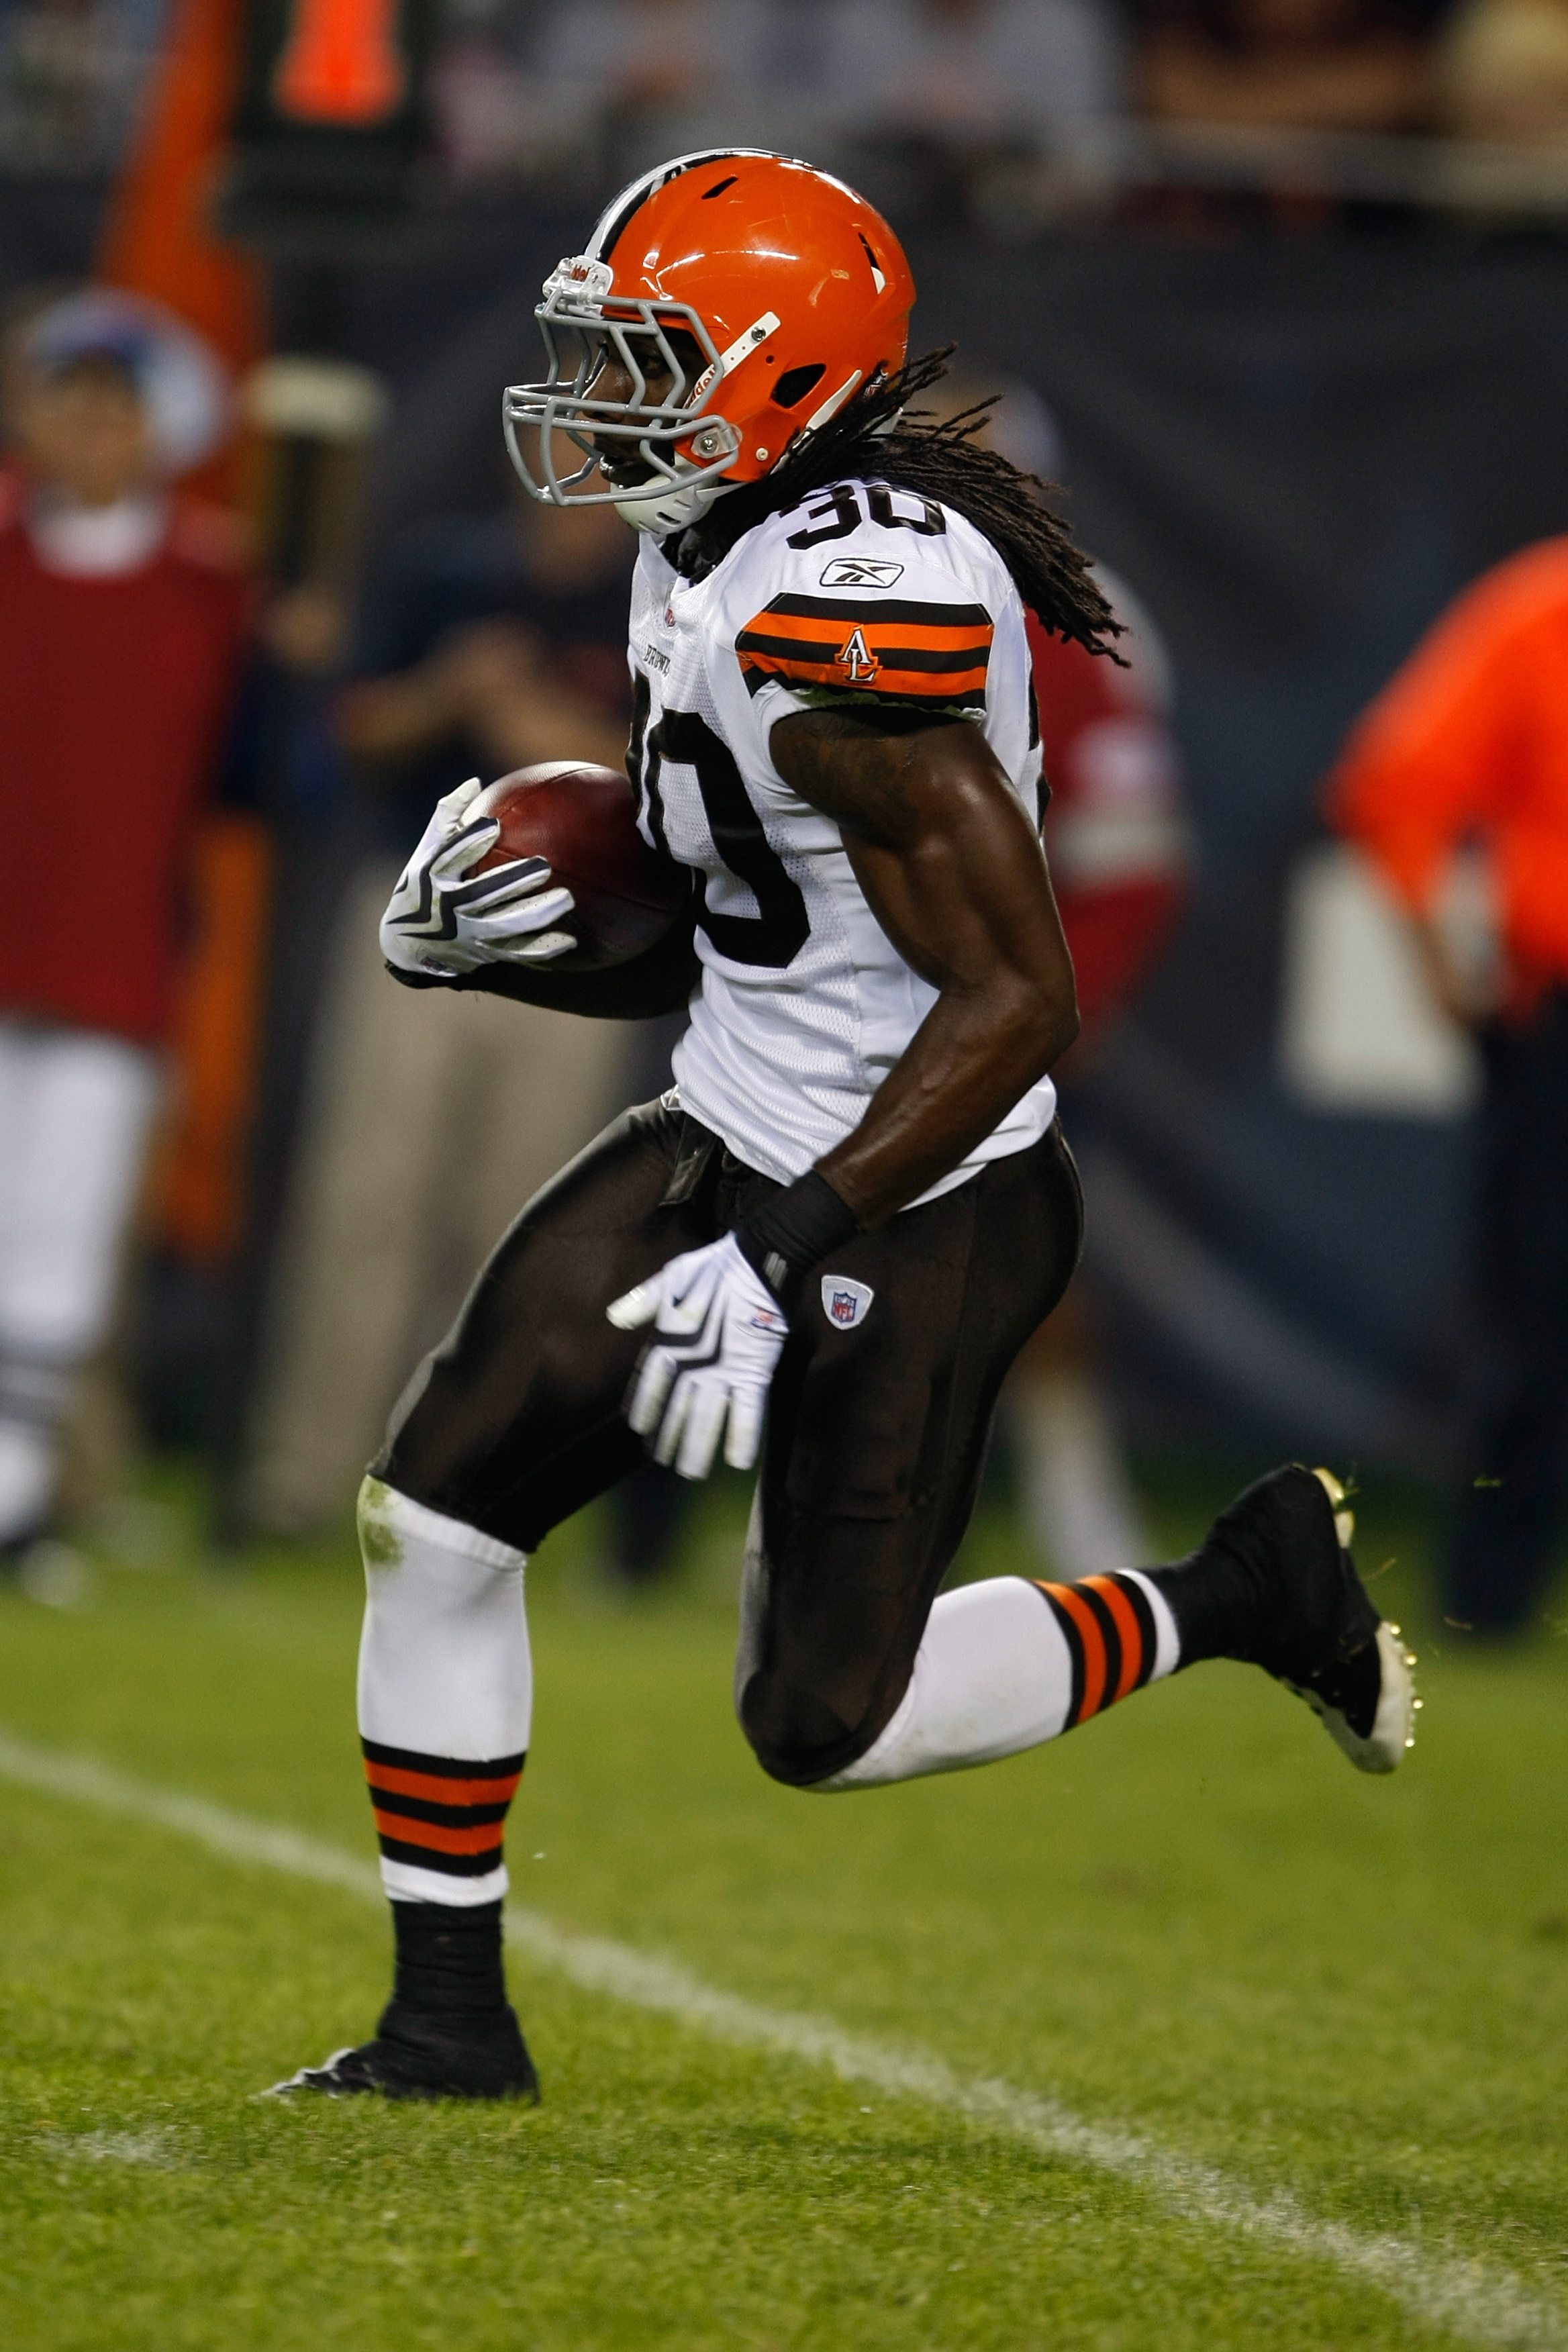 CHICAGO, IL - SEPTEMBER 3: Defensive back Gerald Lawson #30 of the Cleveland Browns runs with the football against  the Chicago Bears at Soldier Field on September 3, 2009 in Chicago, Illinois. The Bears defeated the Browns 26-23. (Photo by Scott Boehm/Ge